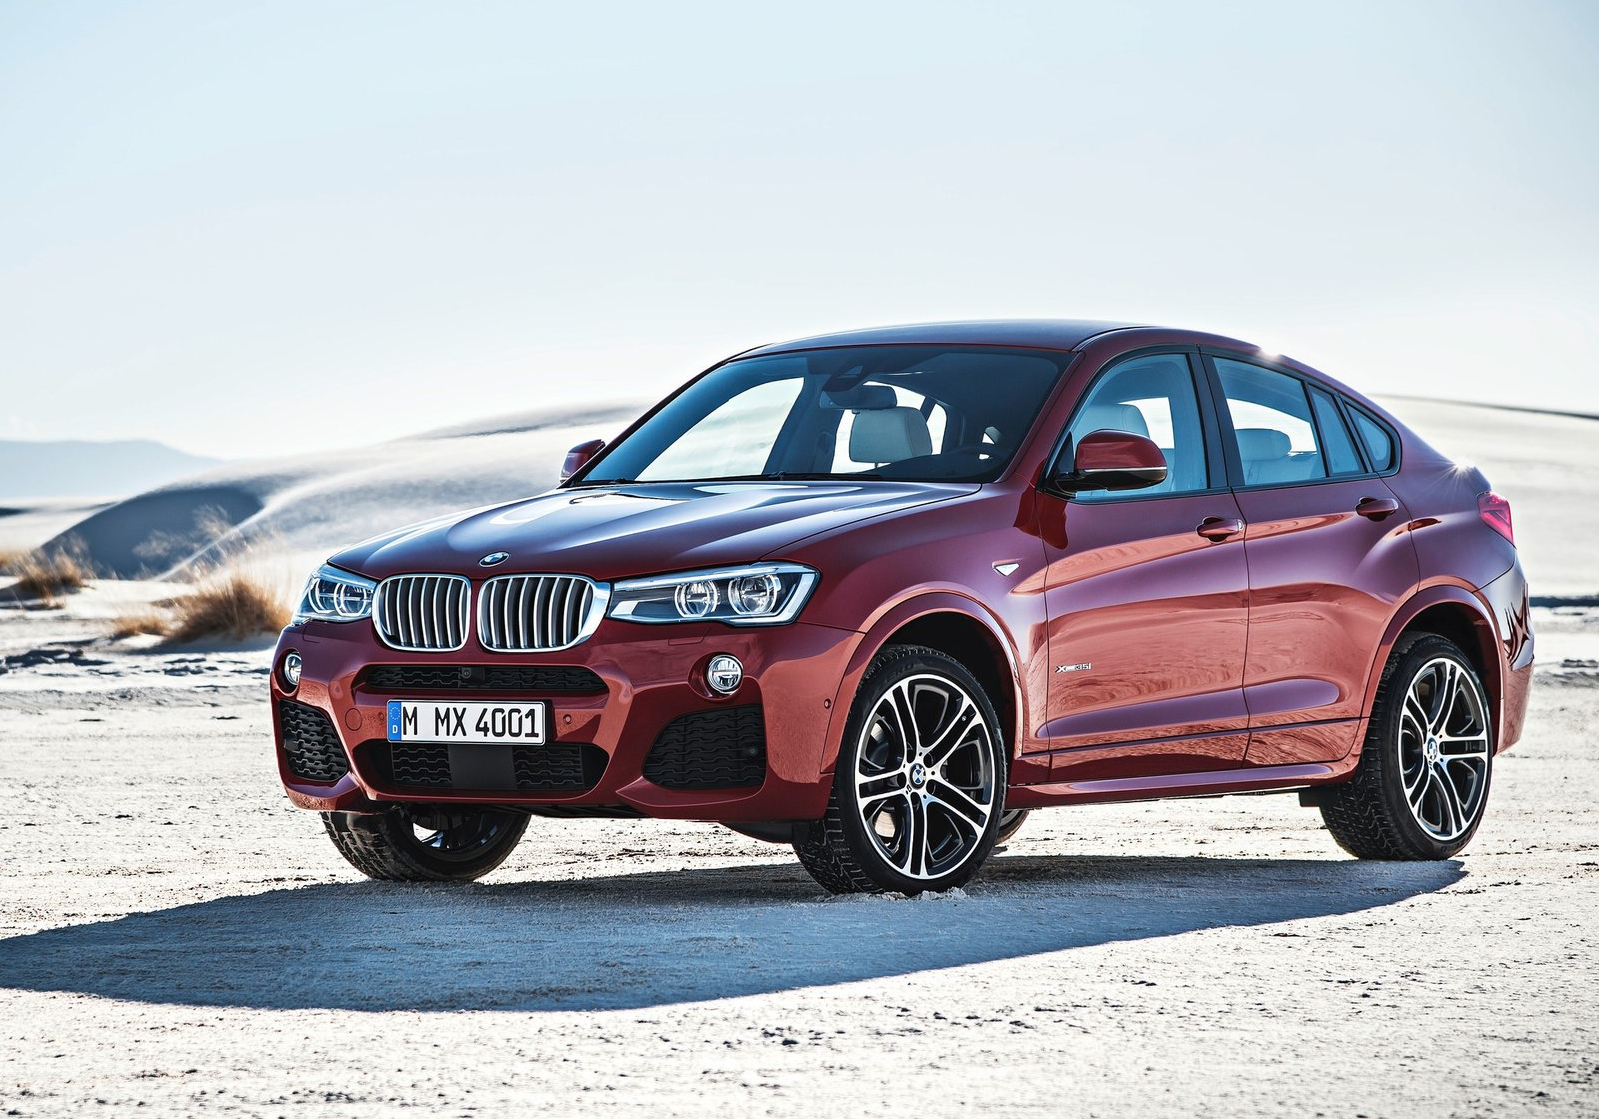 2015 bmw x4 owners manual